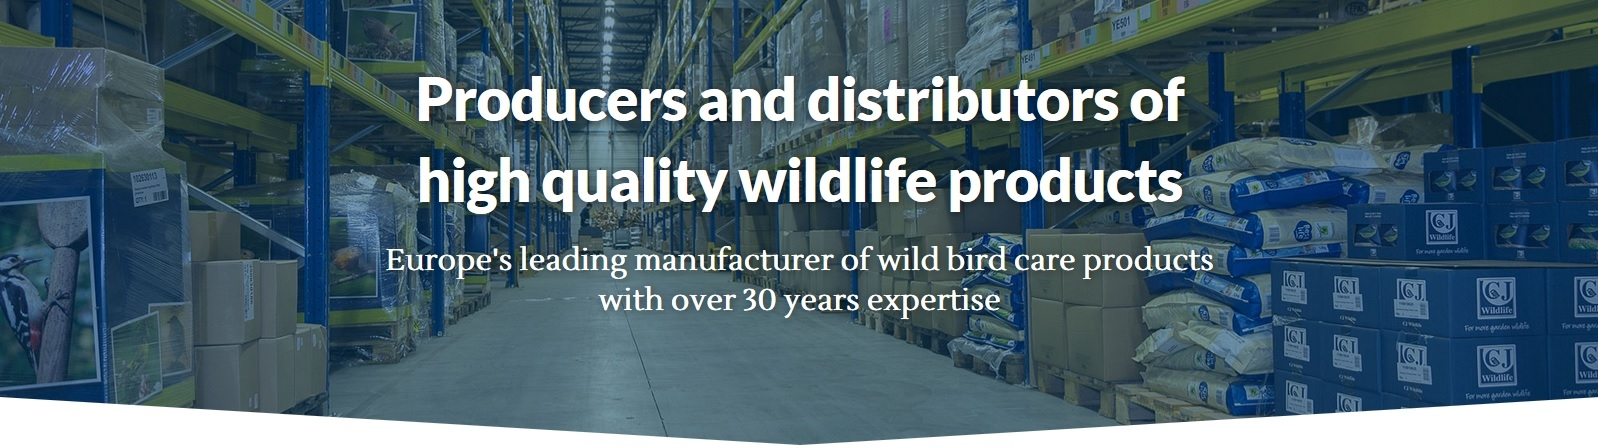 Europe's leading manufacturer of wild bird care products